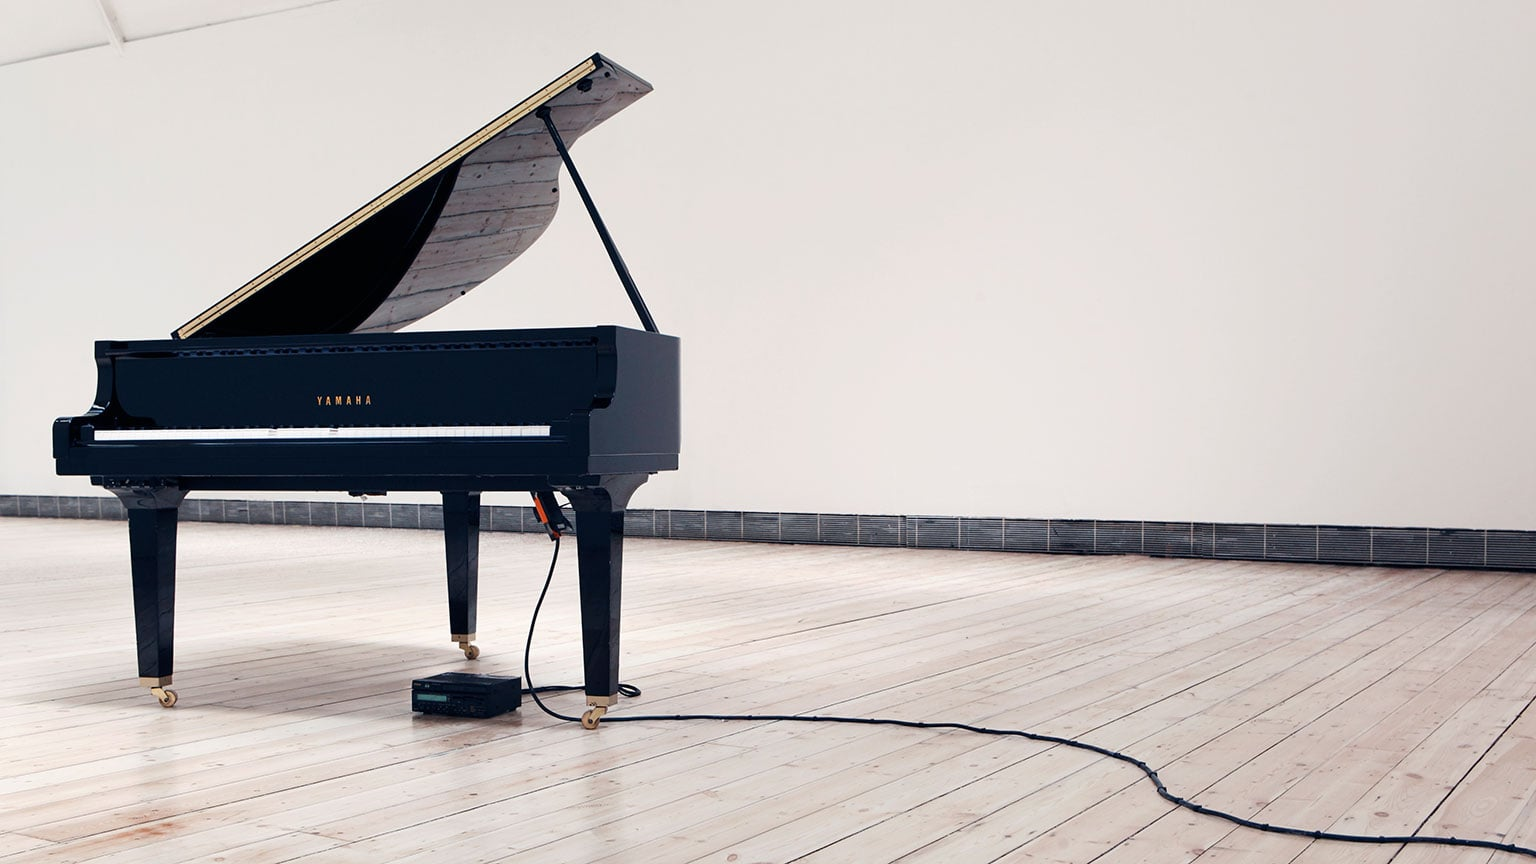 3. Edinburgh Art Festival, 31 July – 31 August 2014 - Katie Paterson, Earth Moon Earth (Moonlight Sonata Reflected from the Surface of the Moon) 2007. Photo © We are Tape; Courtesy of the artist